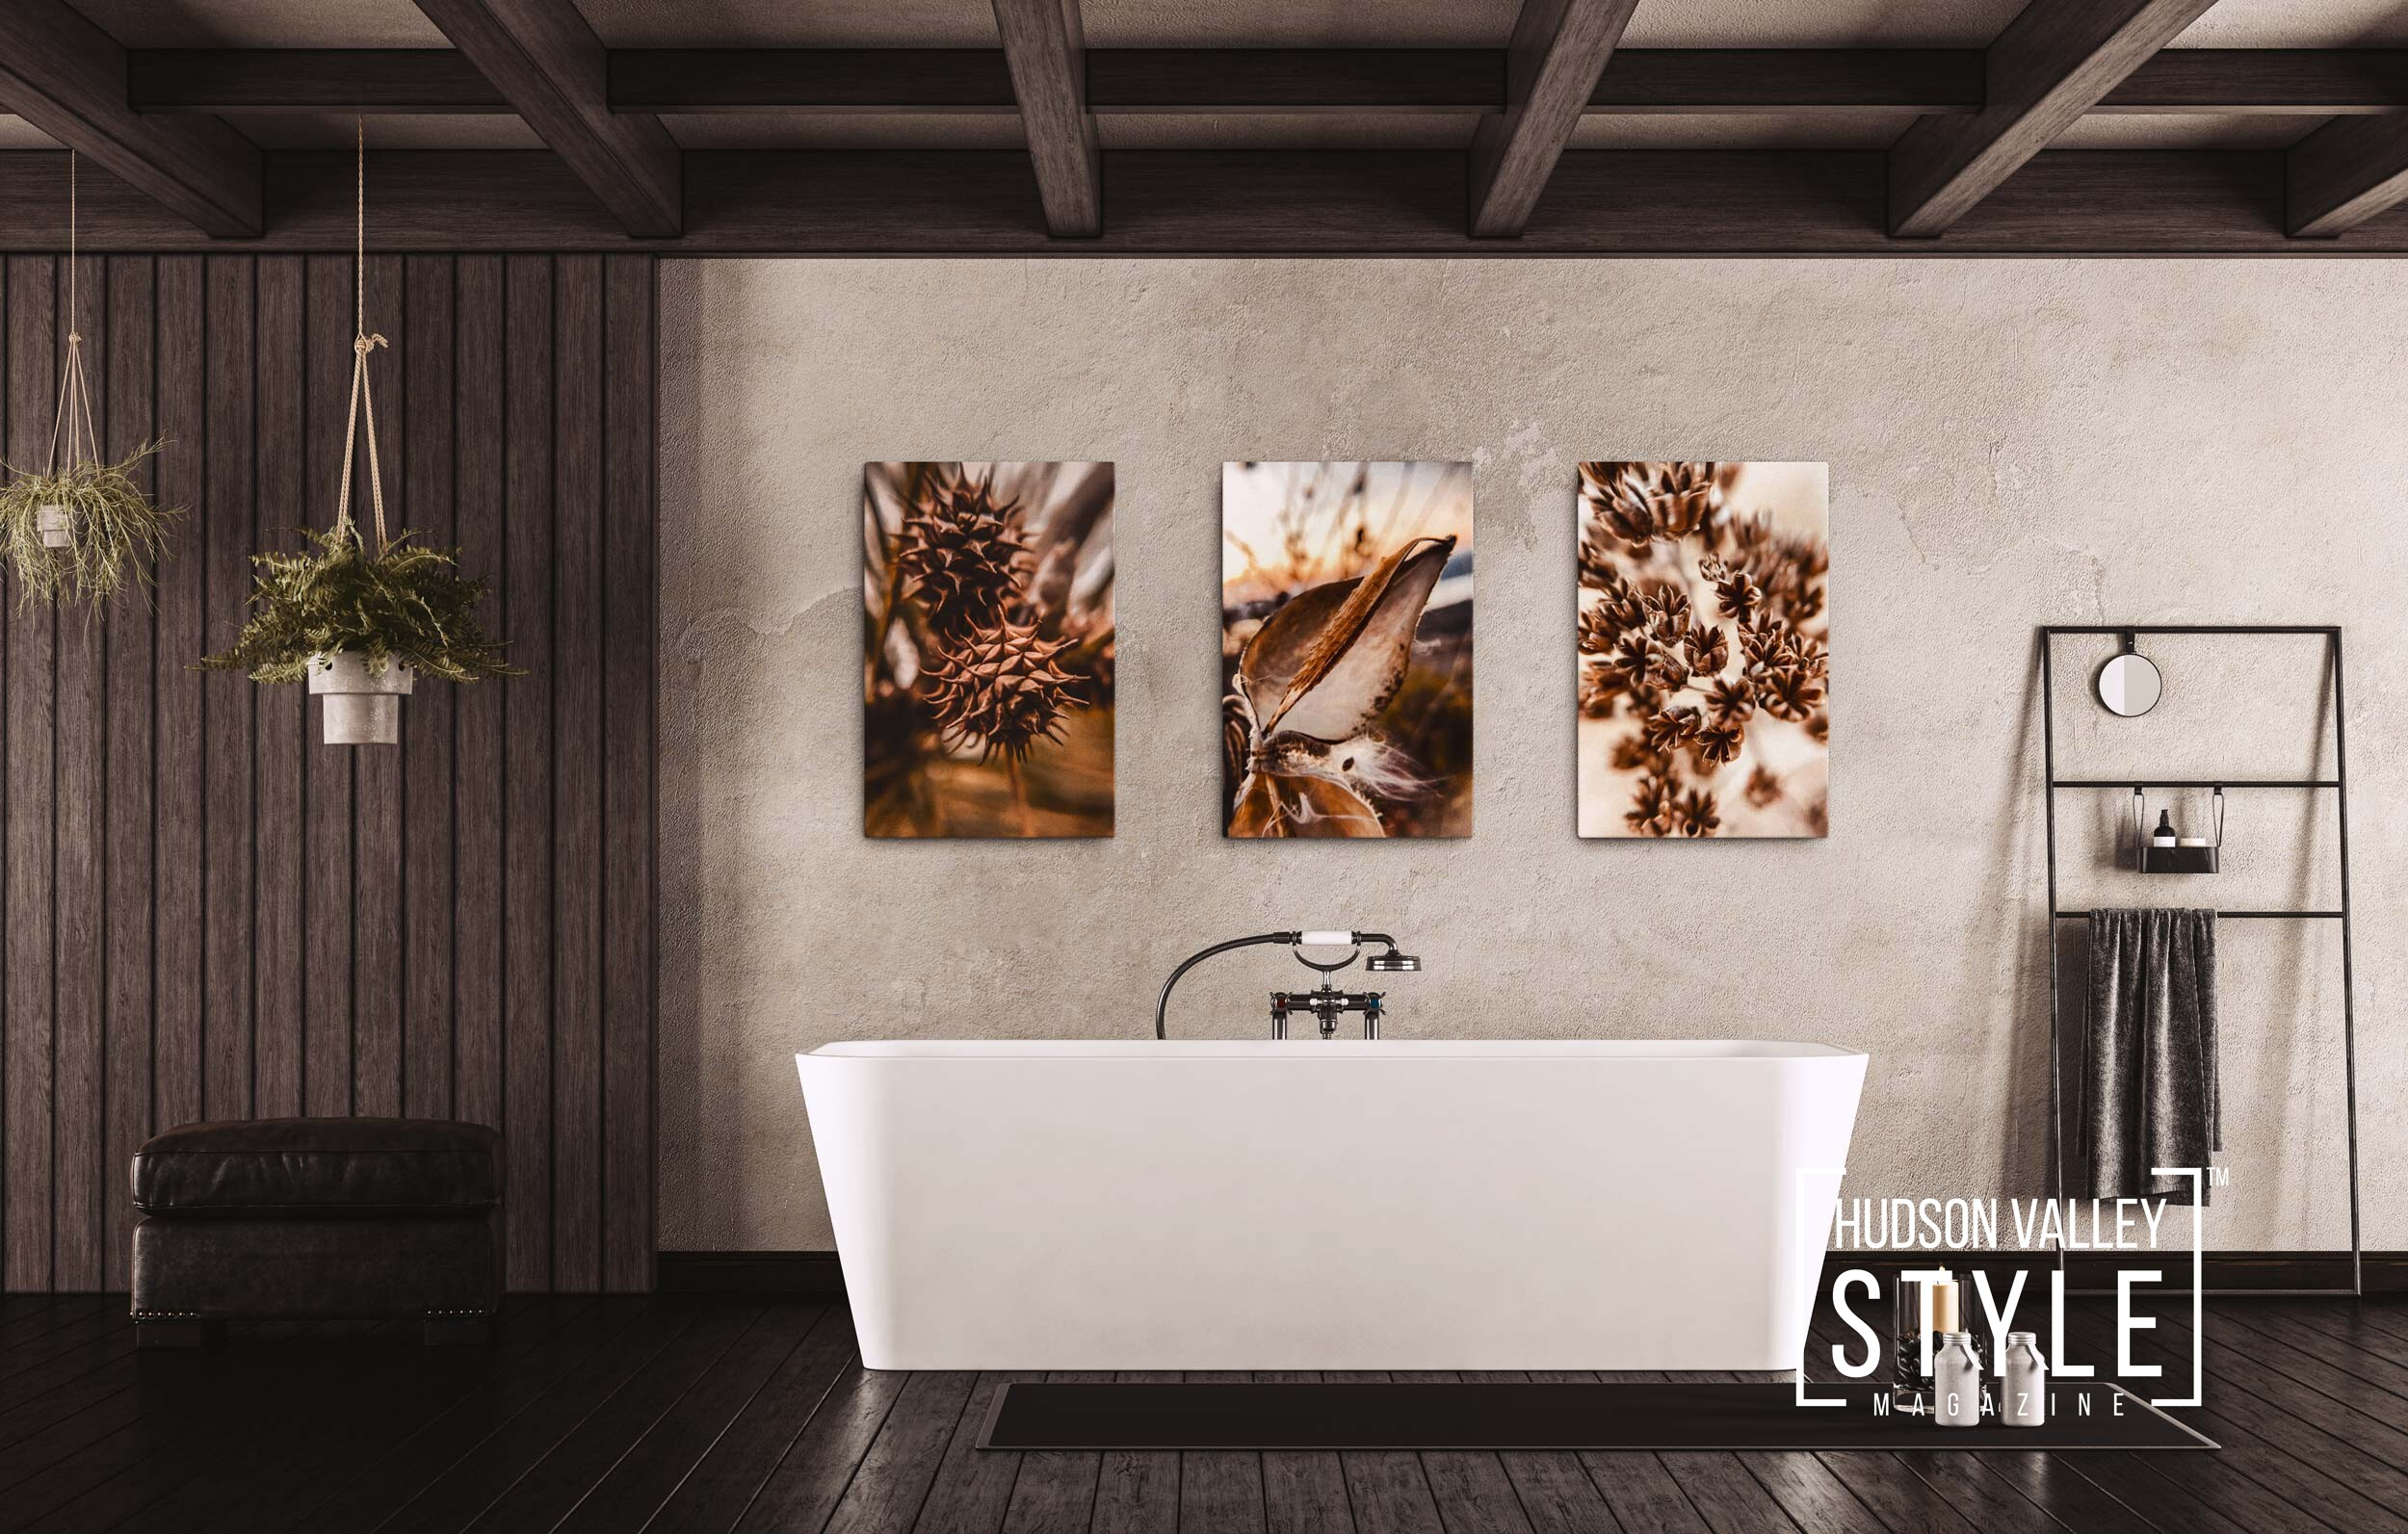 How to Improve Your Interior Design with Strategically Arranged Wall Art